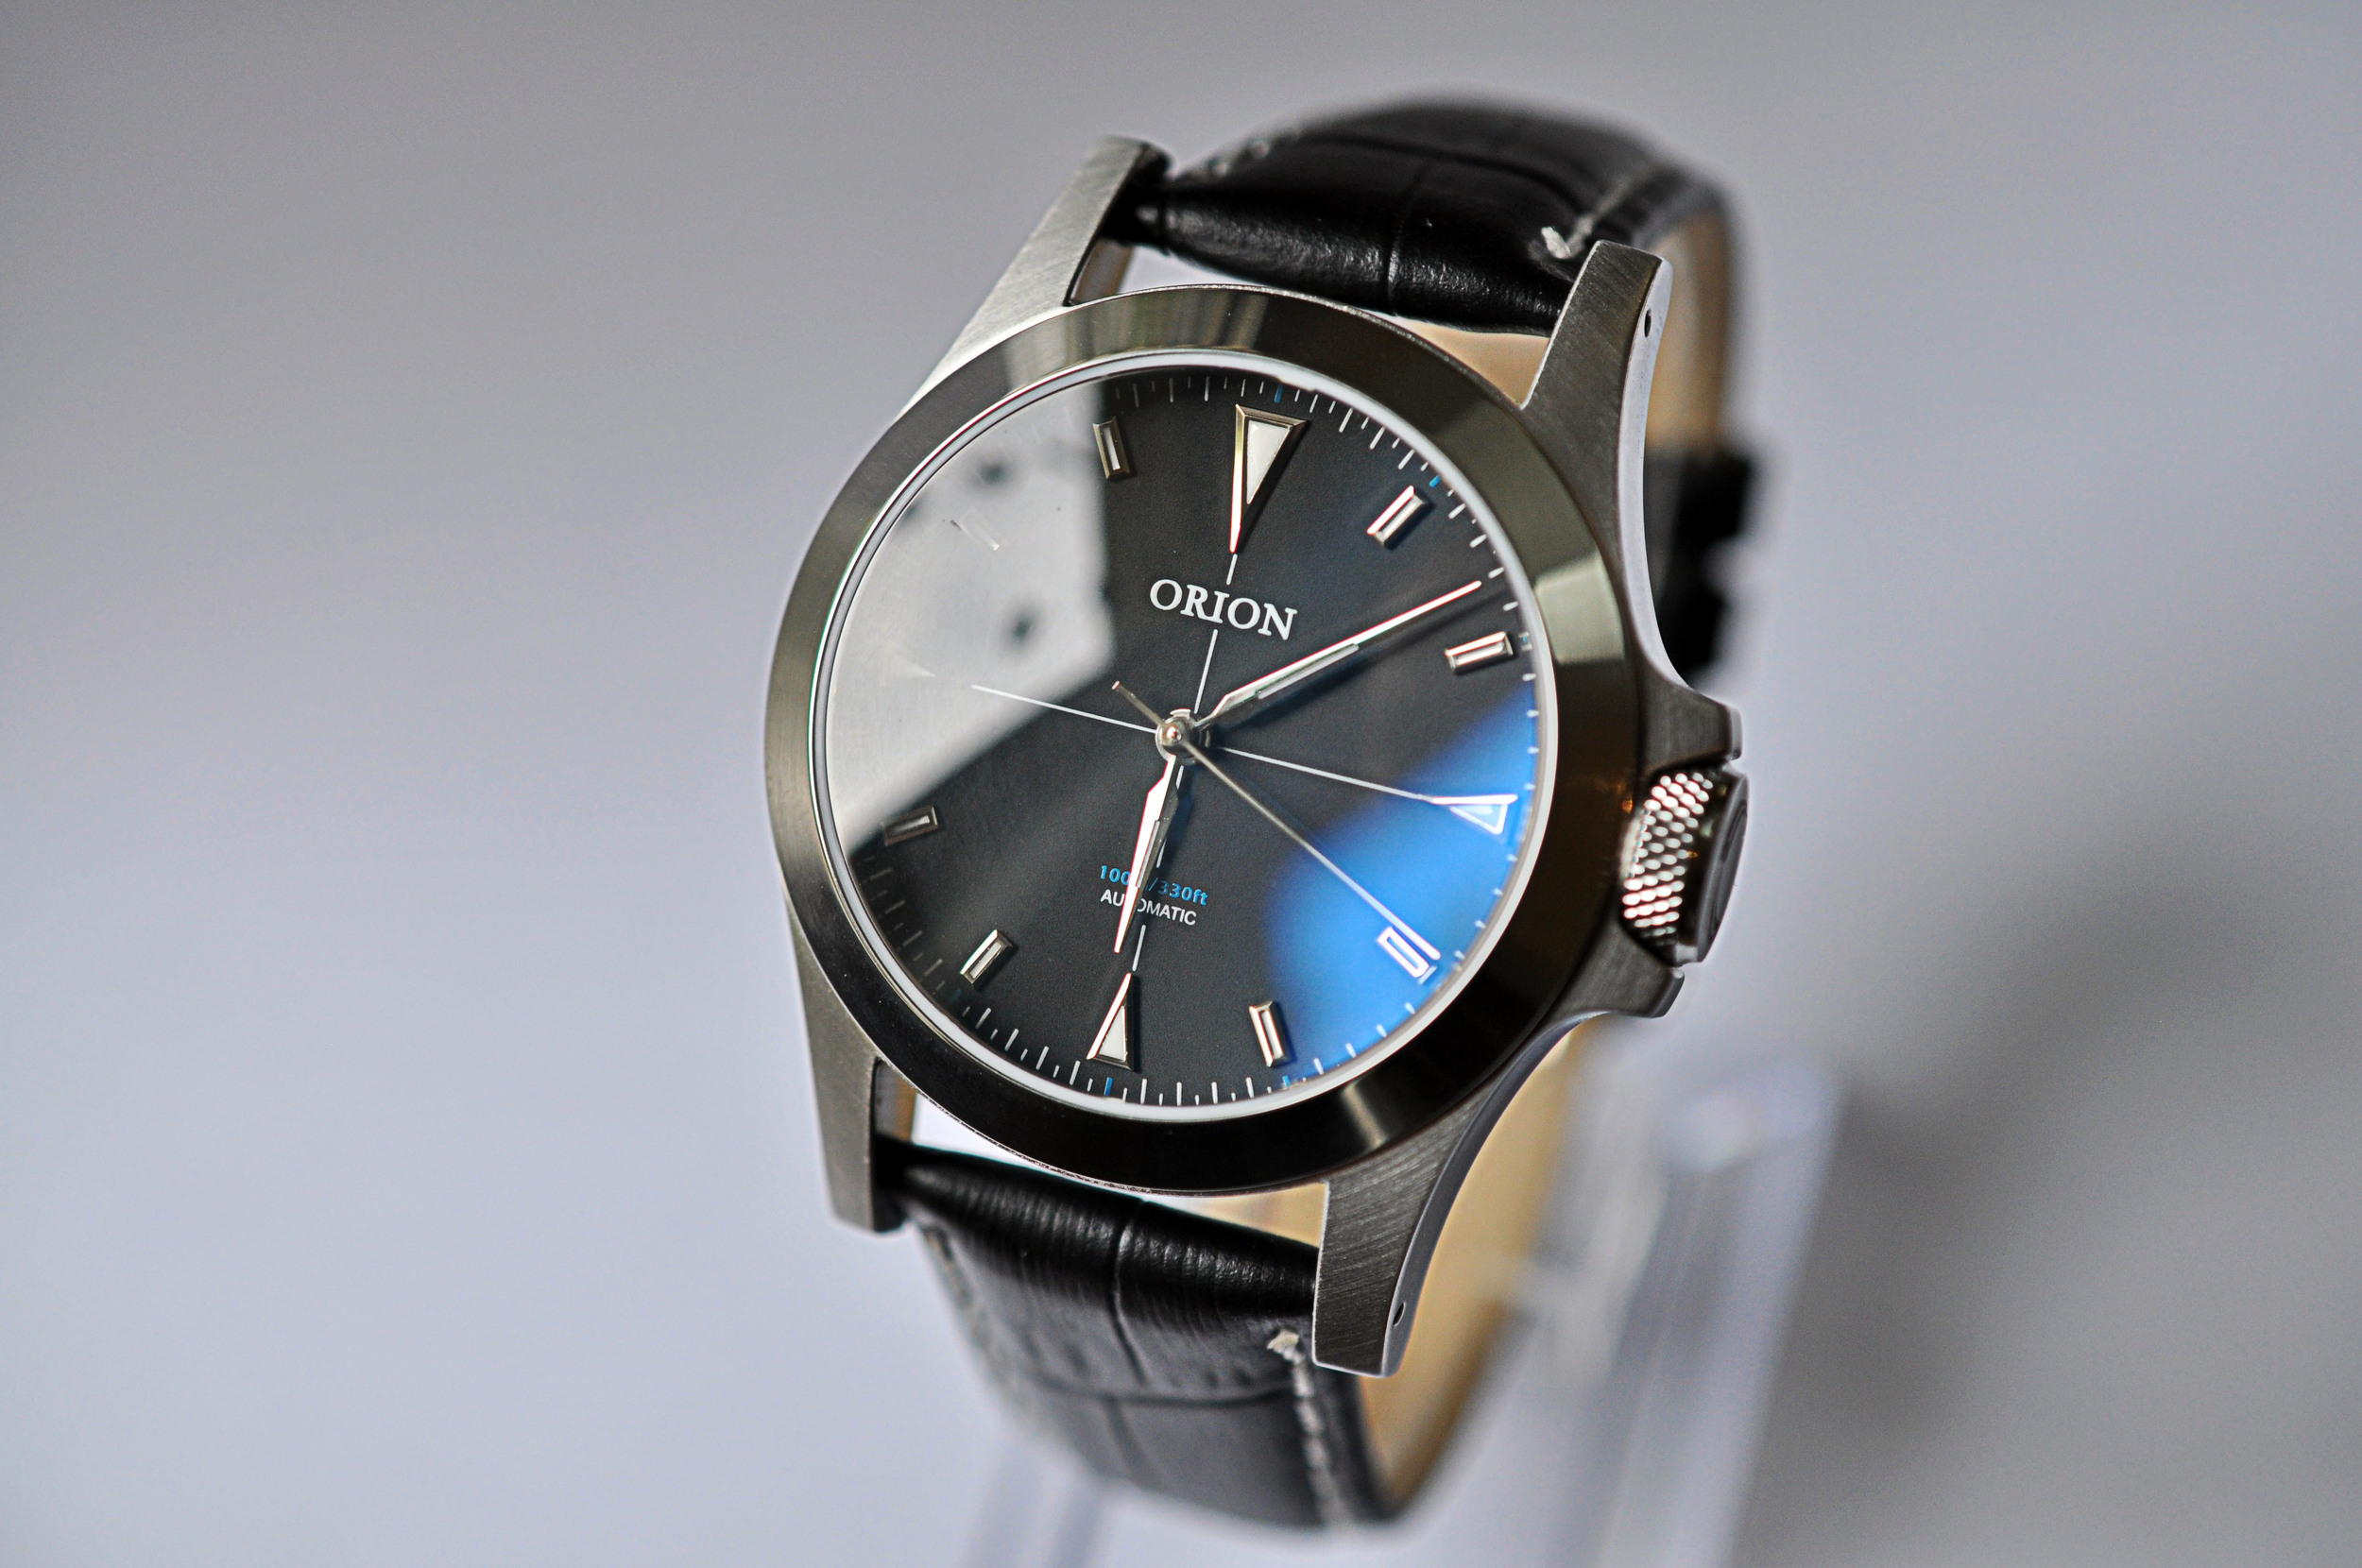 Blue dial variant, every 5 minutes there is a blue minute marker. Strap is a placeholder.